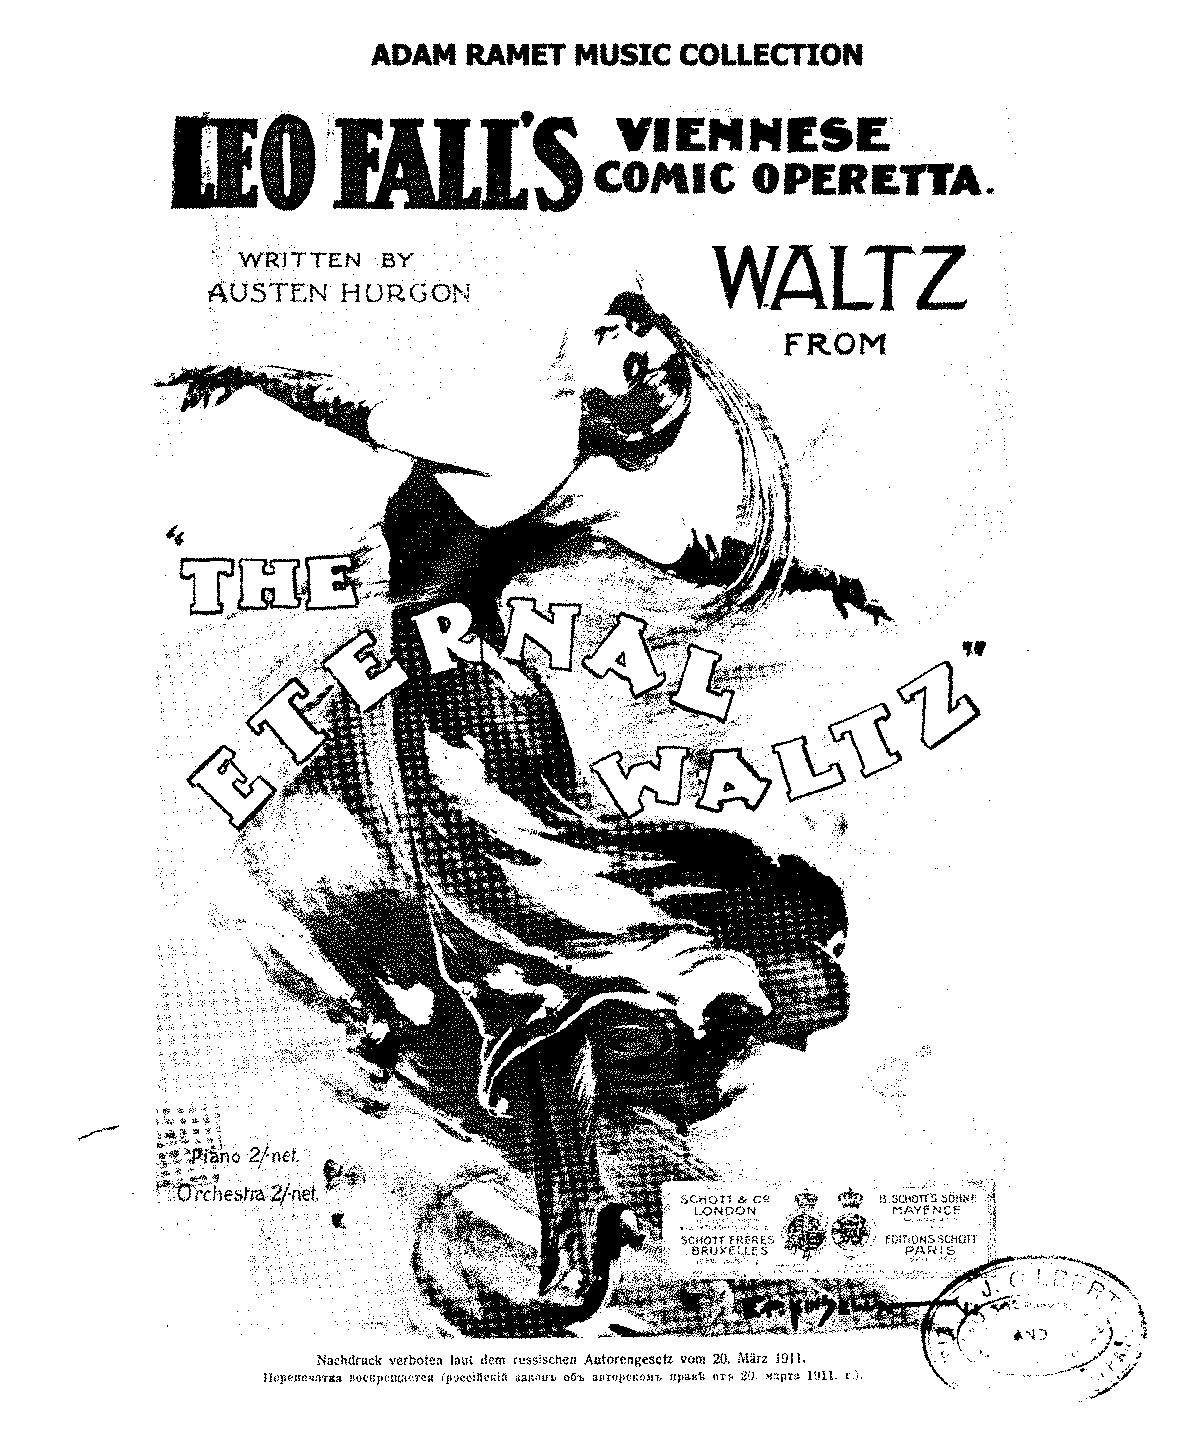 PMLP279590-FALL Eternal Waltz 1911.pdf